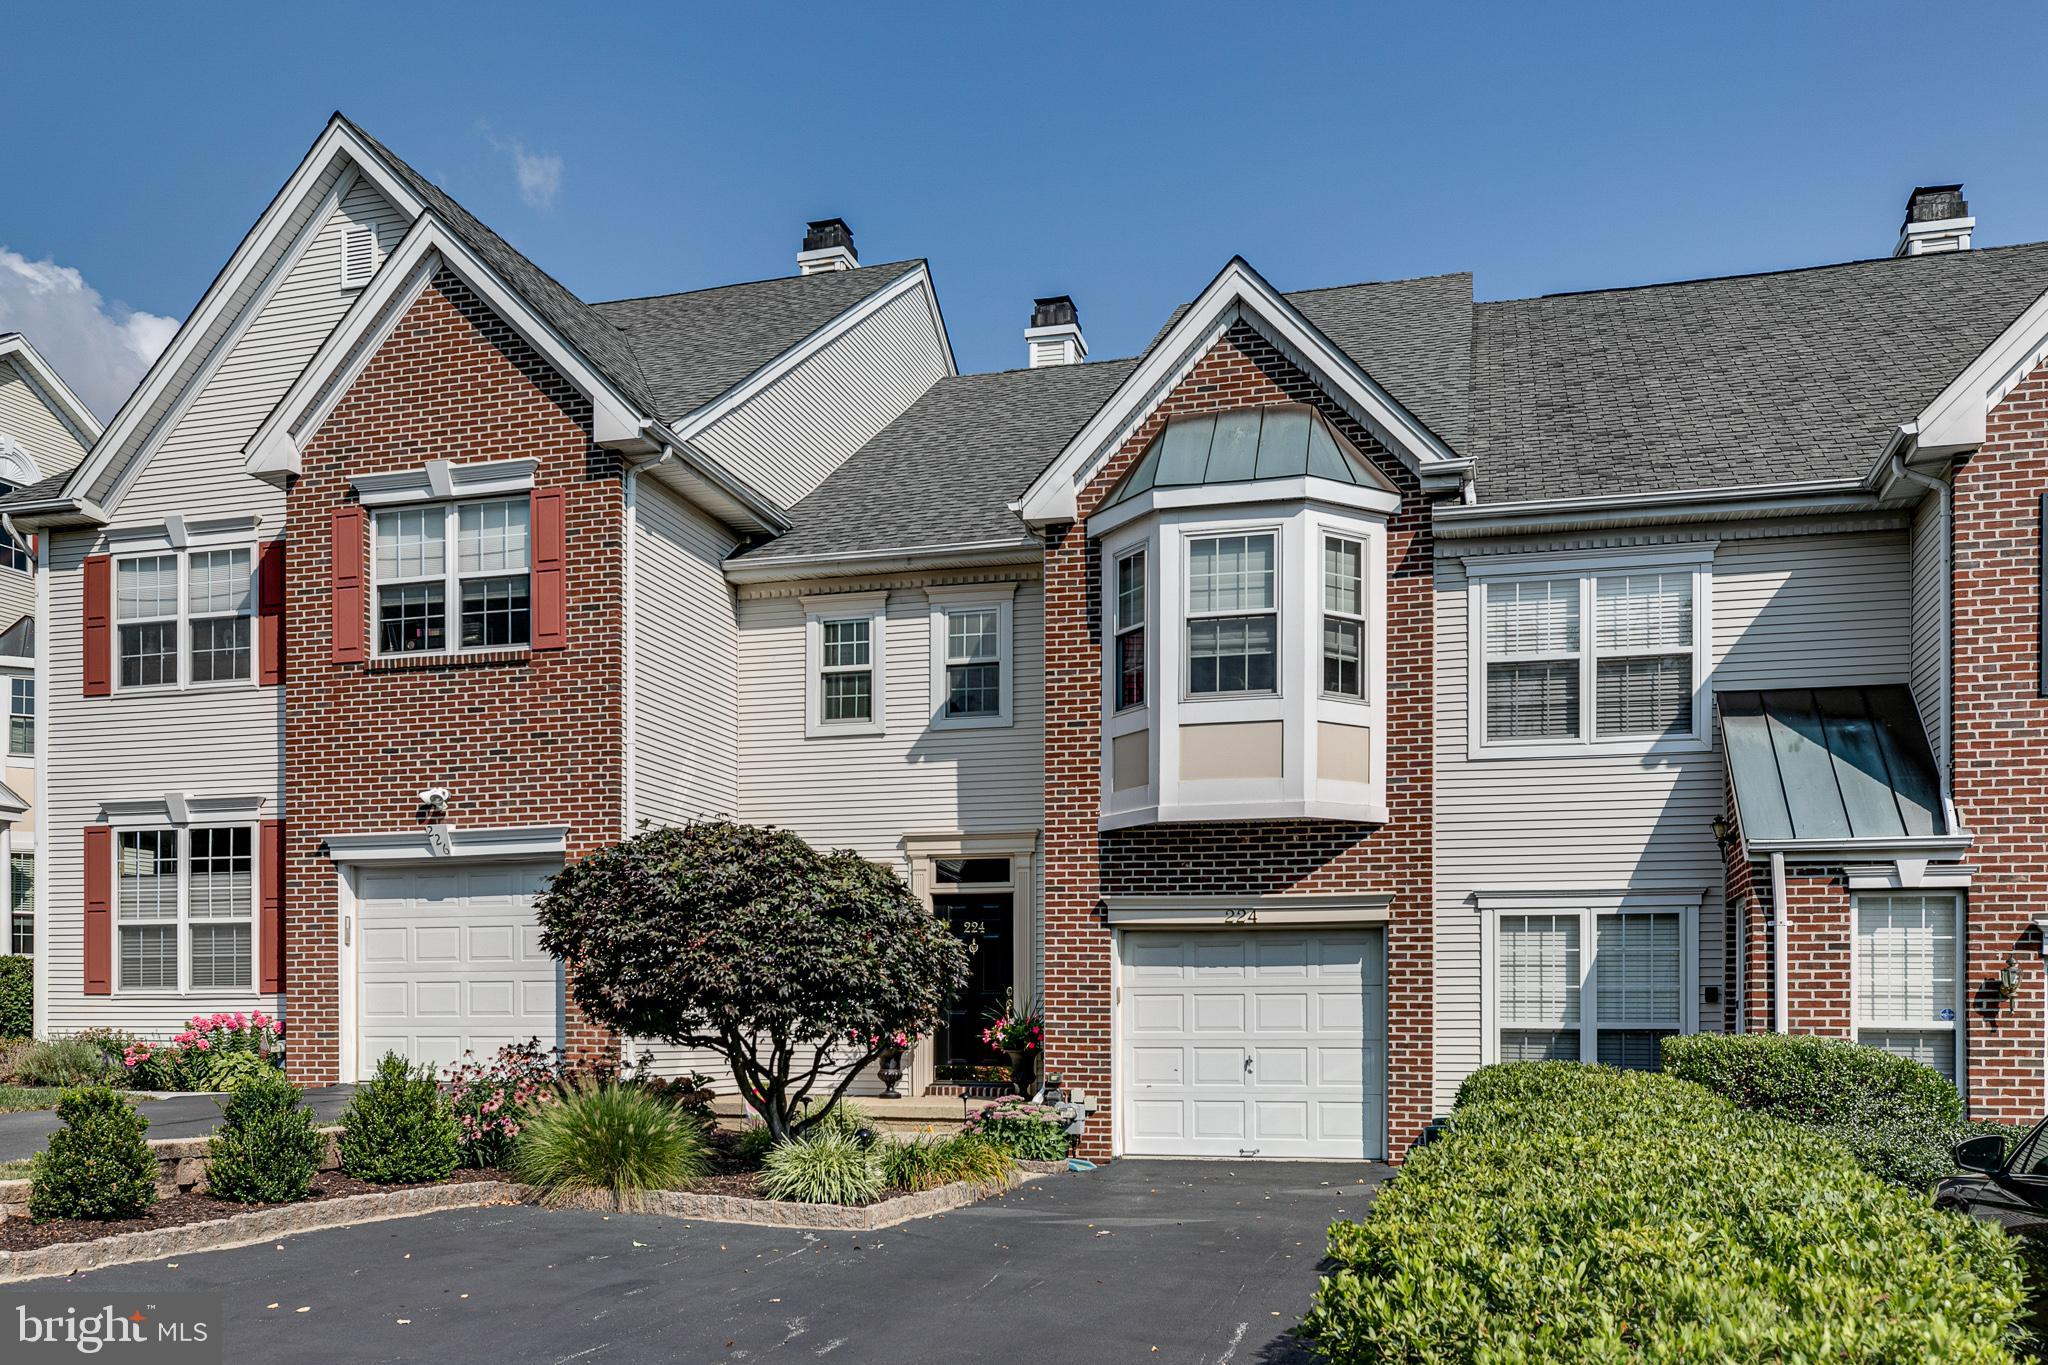 Welcome home to 224 Valley Forge Lookout Place. This beautiful 2 bedroom, 2 and 1 half bathroom luxury-style townhome is located in the desirable Rebel Hill neighborhood within the highly-regarded Upper Merion School District. The elegant foyer is your entrance to the main level, which offers a beautiful 2-story formal living room, tastefully decorated with a neutral color palette. The grand floor-to-ceiling fireplace and windows create a sophisticated ambiance, complete with abundant natural light. Enjoy cooking in the eat-in kitchen that offers contemporary updates. Open the sliders and carry out your morning coffee to enjoy on the spacious, newer Trex deck. A formal dining room and beautifully updated powder room round out the main floor.  Downstairs you will find a fully-finished basement, perfect for entertaining or a casual family room area. A patio underneath the deck offers additional outside space. The basement also includes a generous storage room.  Walk upstairs and up the open staircase to the second floor, which offers the primary bedroom, complete with gorgeously updated en suite bathroom with a spacious shower, double vanity, private water closet and beautiful soaking tub. The primary bedroom also features a walk-in closet complete with high-end built-in organizers. The laundry room is conveniently located on this level, along with an additional bedroom and updated full hall bathroom.  Move in and don't lift a finger, this home is filled with high-end finishes and amenities. Enjoy the convenience of townhome living right on the Main Line. Conveniently located close to all major highways and shopping and dining at Suburban Square and the King of Prussia Mall.